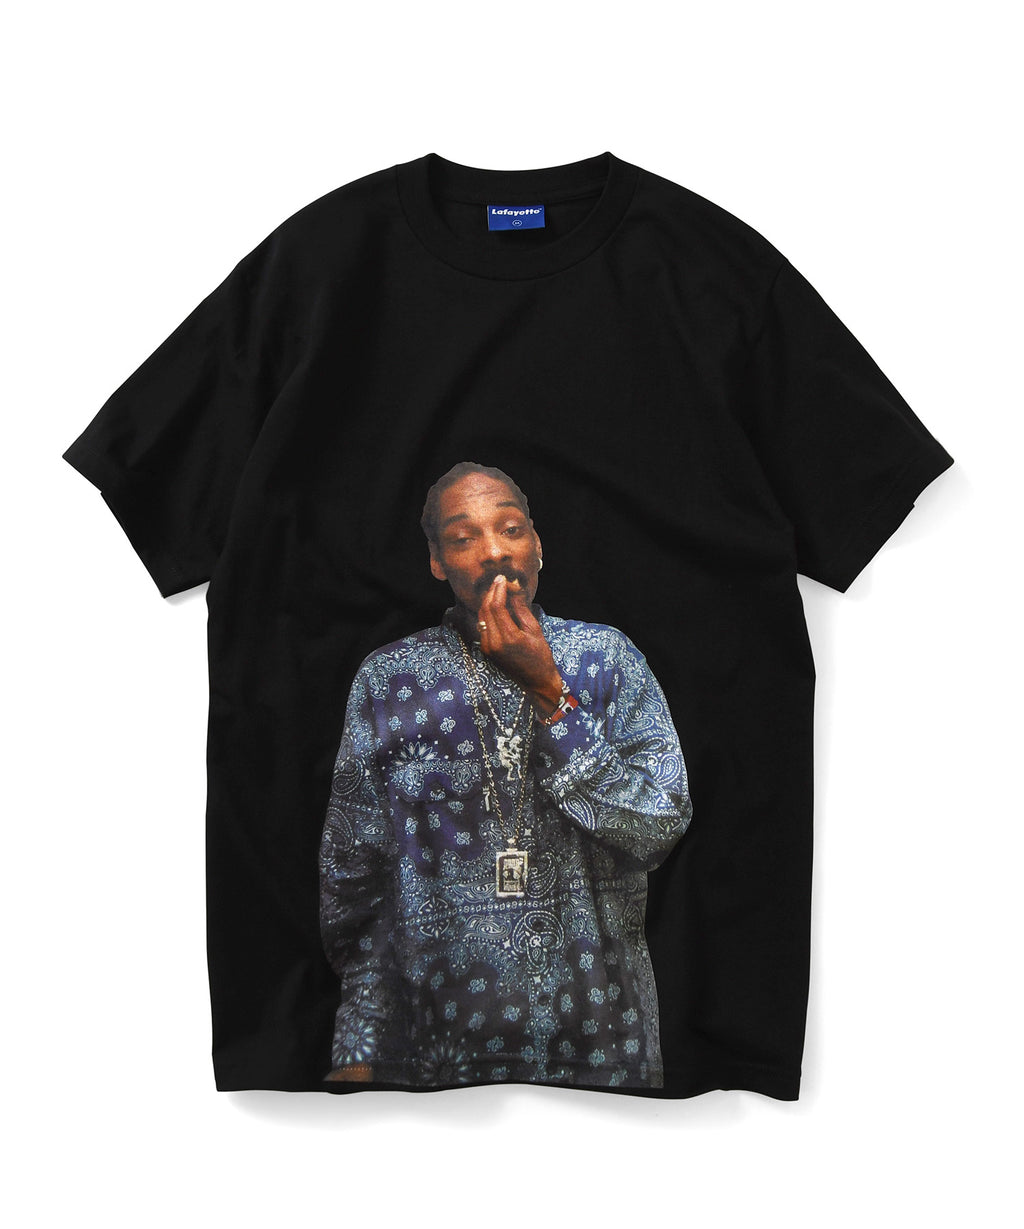 Lafayette × JOHNNY NUNEZ SNOOP DOG TEE LS200124 BLACK